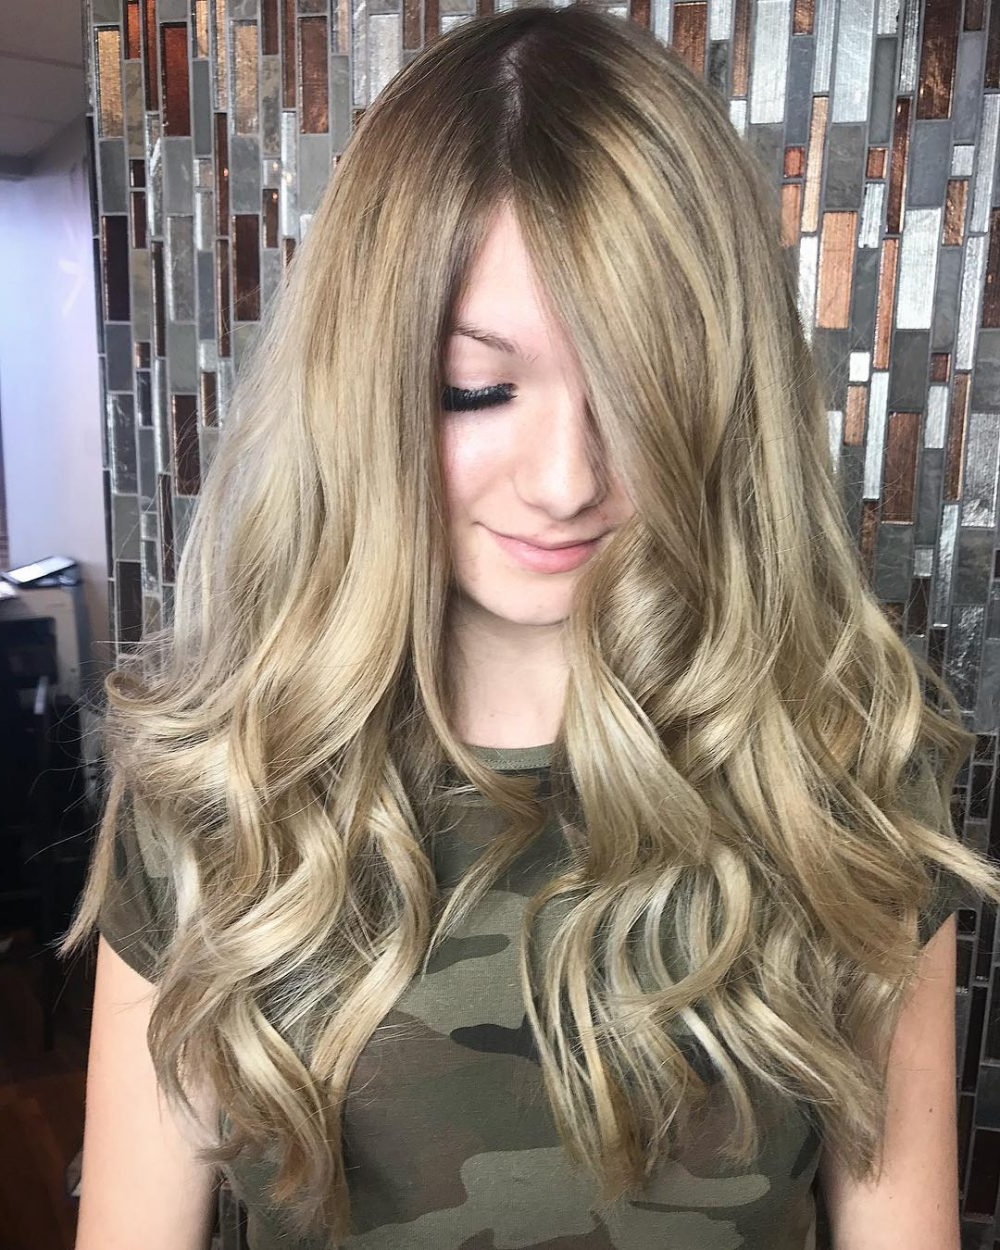 24 Long Wavy Hair Ideas That Are Freaking Hot In 2019 Within Well Known Long Wavy Hairstyles With Horizontal Bangs (Gallery 1 of 20)